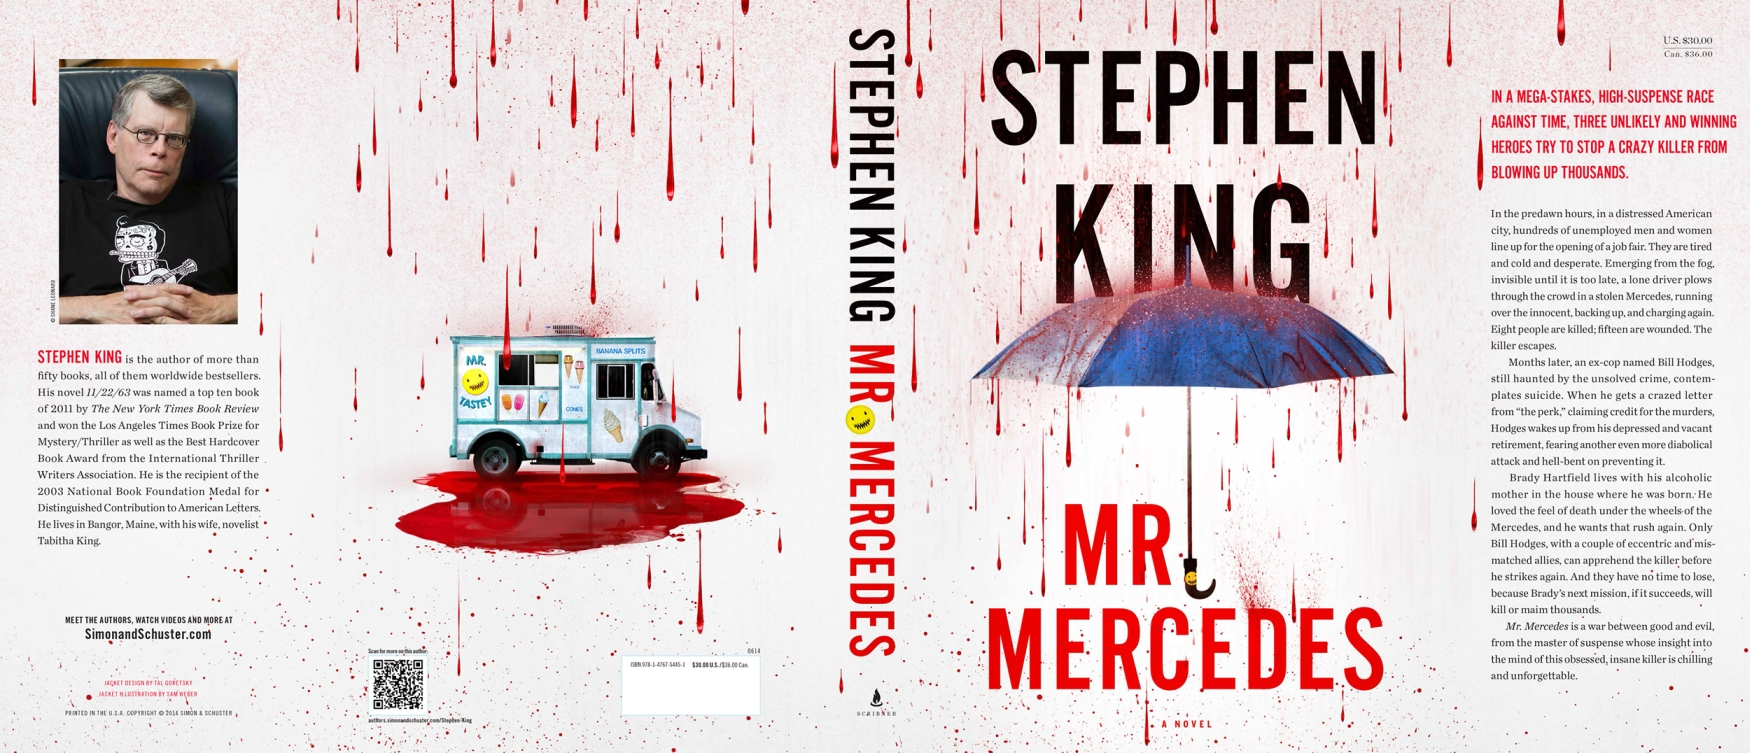 StephenKing-Mr-Mercedes